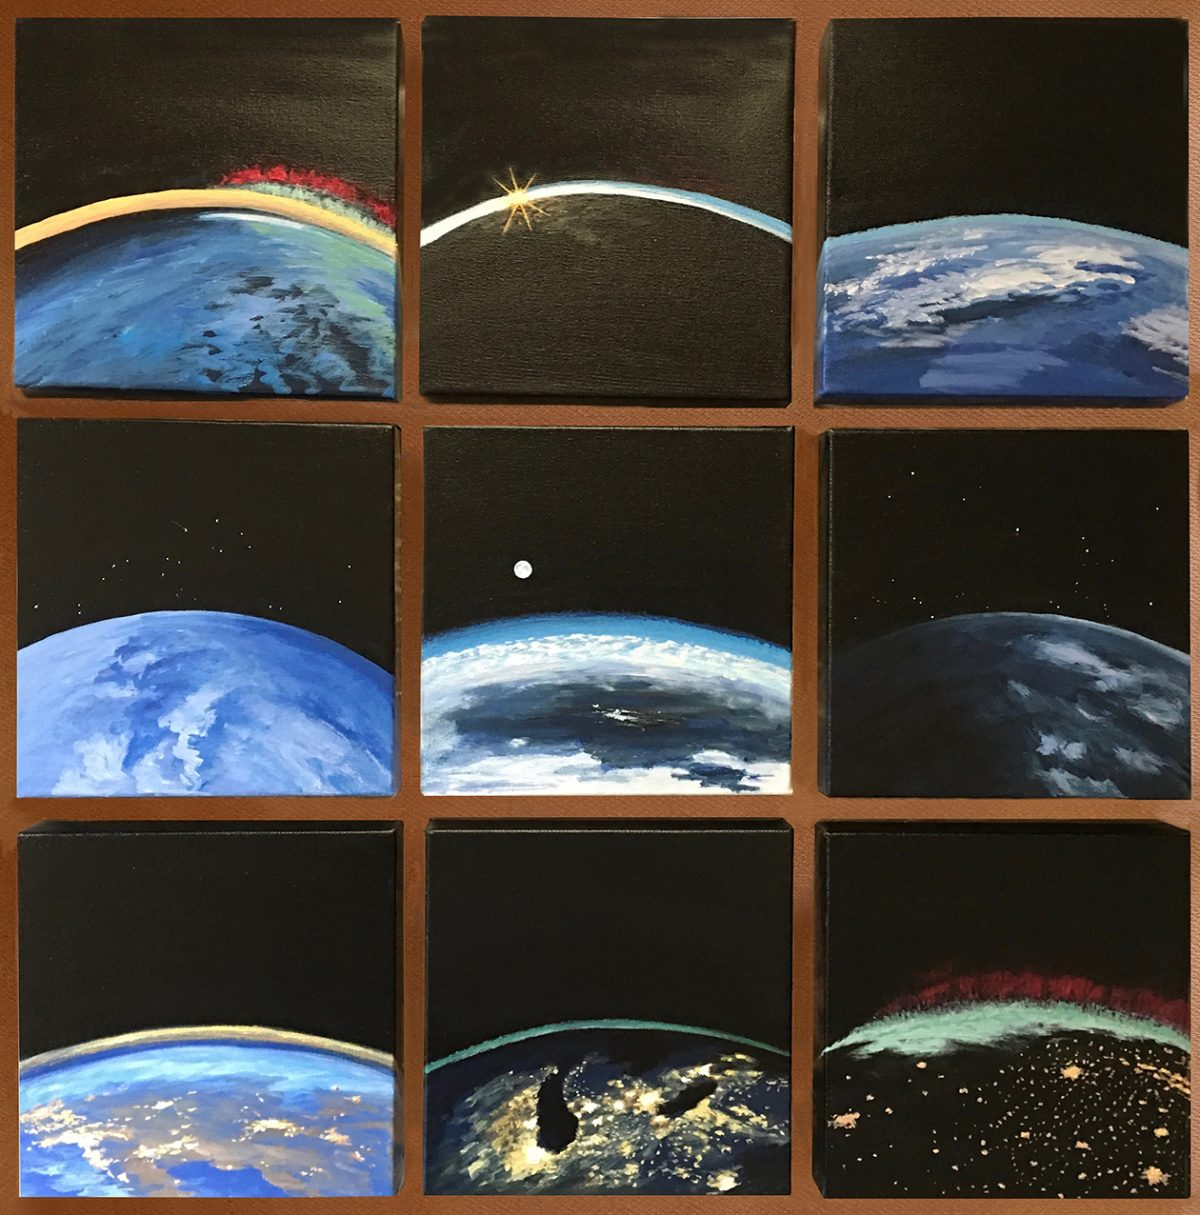 2021-06,07,08,09,10,11,12,13,14-SpaceVisionCollection